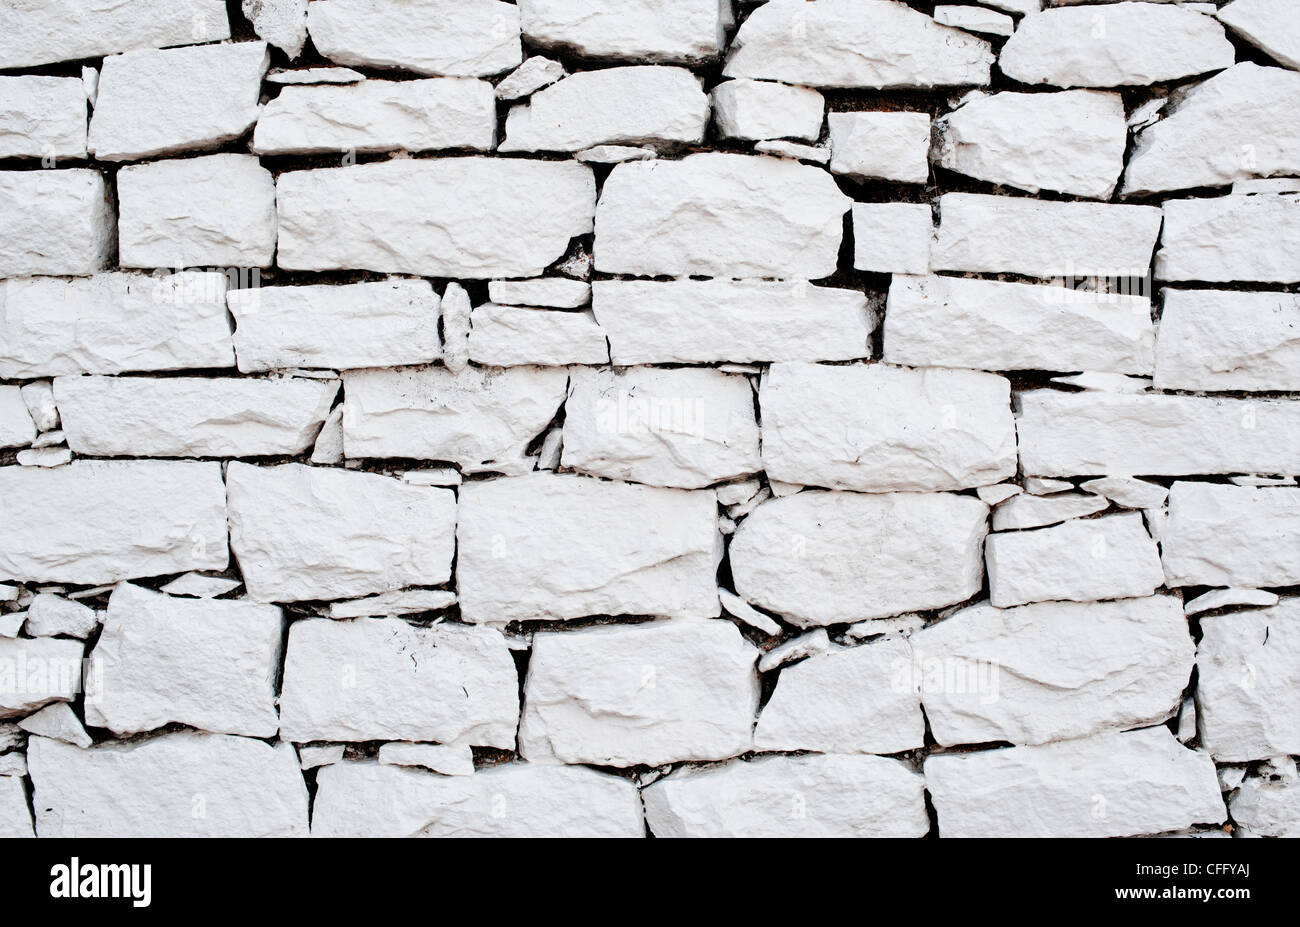 painted stone wallWhite painted dry stone wall Stock Photo Royalty Free Image